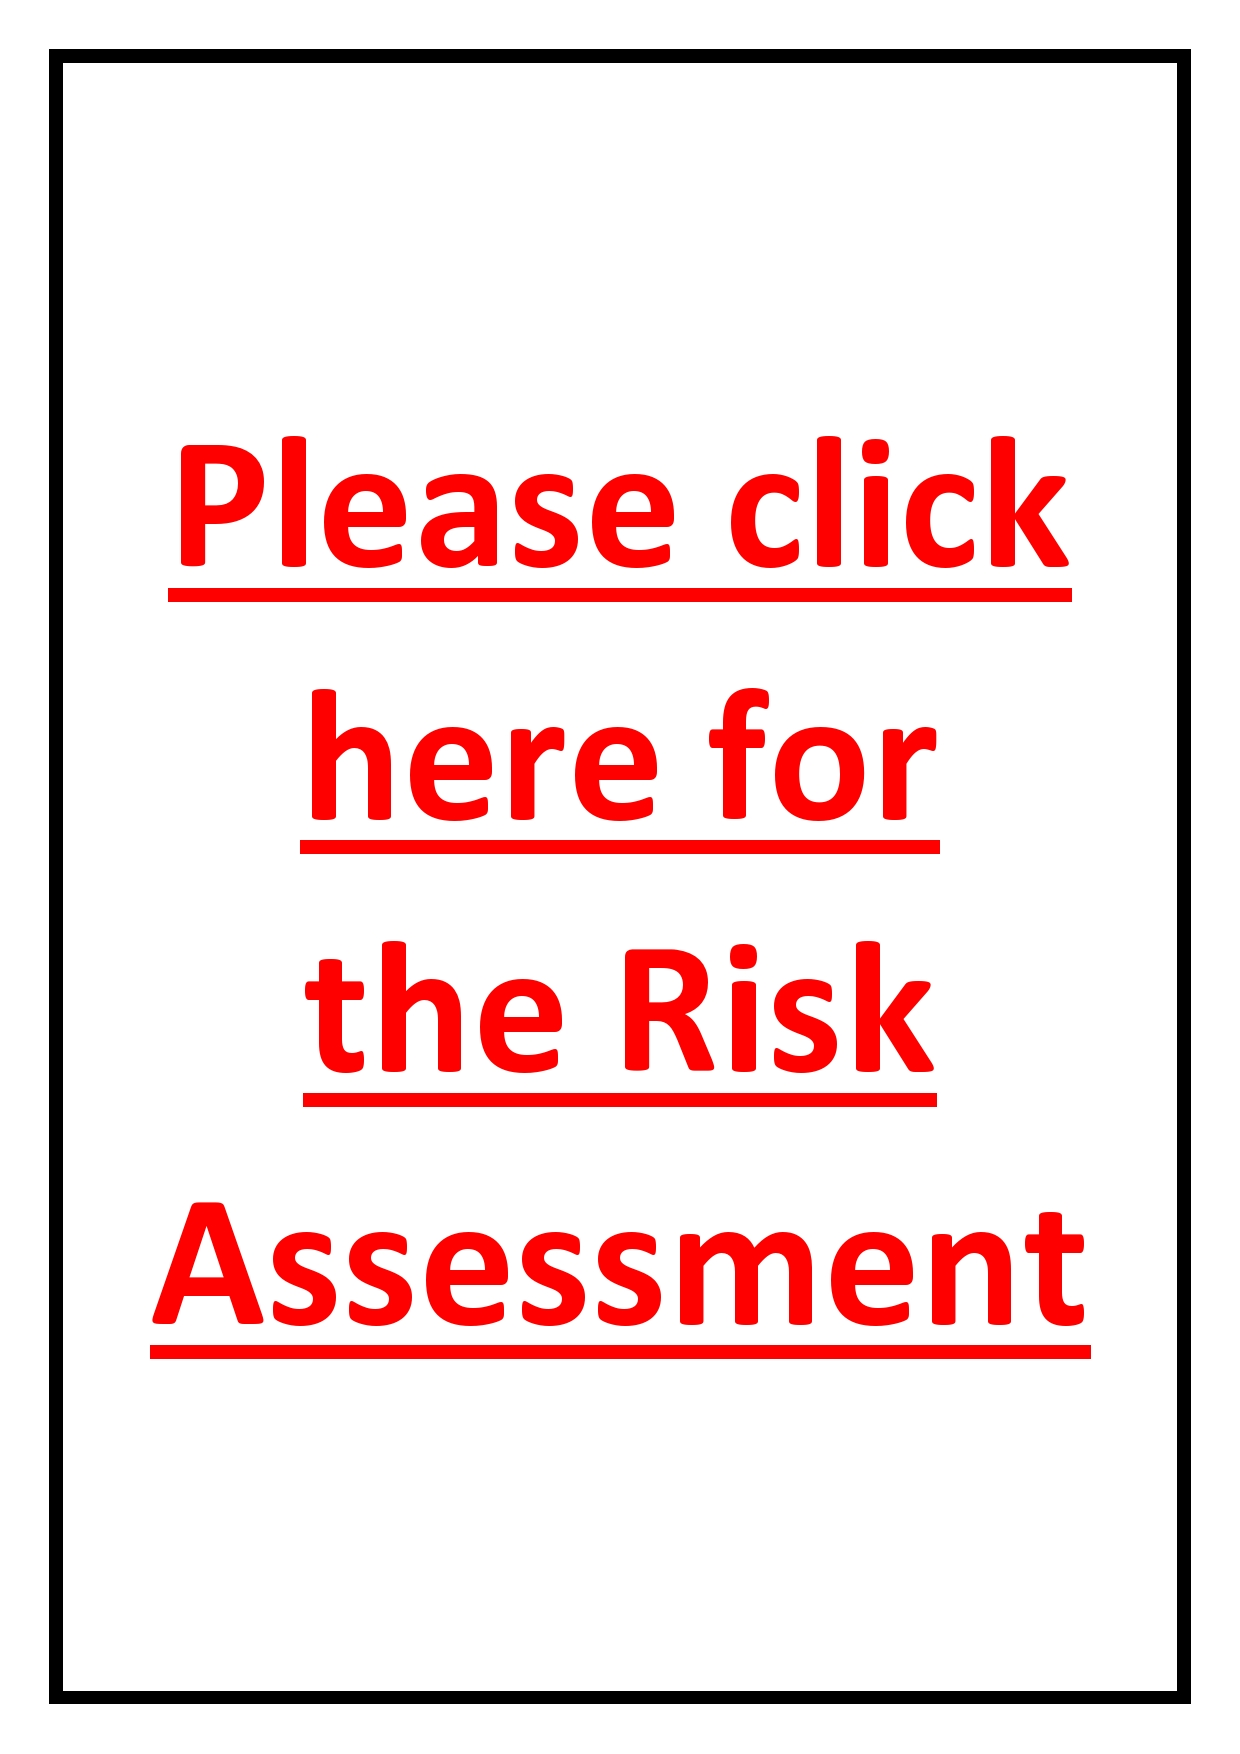 https://www.northwoodbroom.co.uk/images/COVID/NEW_Risk_Assessment_Image-page0001.jpg